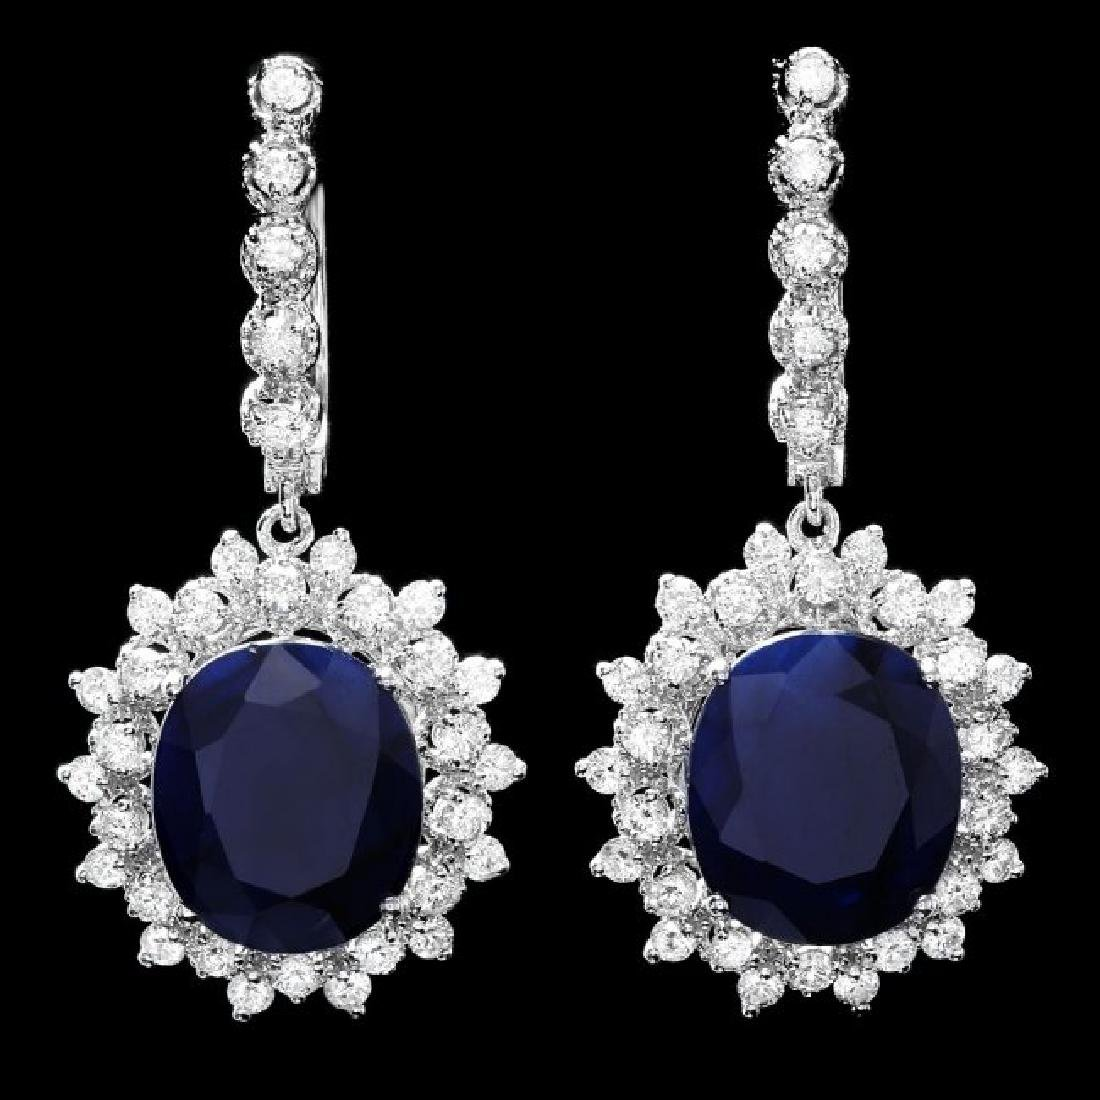 14k Gold 16.50ct Sapphire 2ct Diamond Earrings